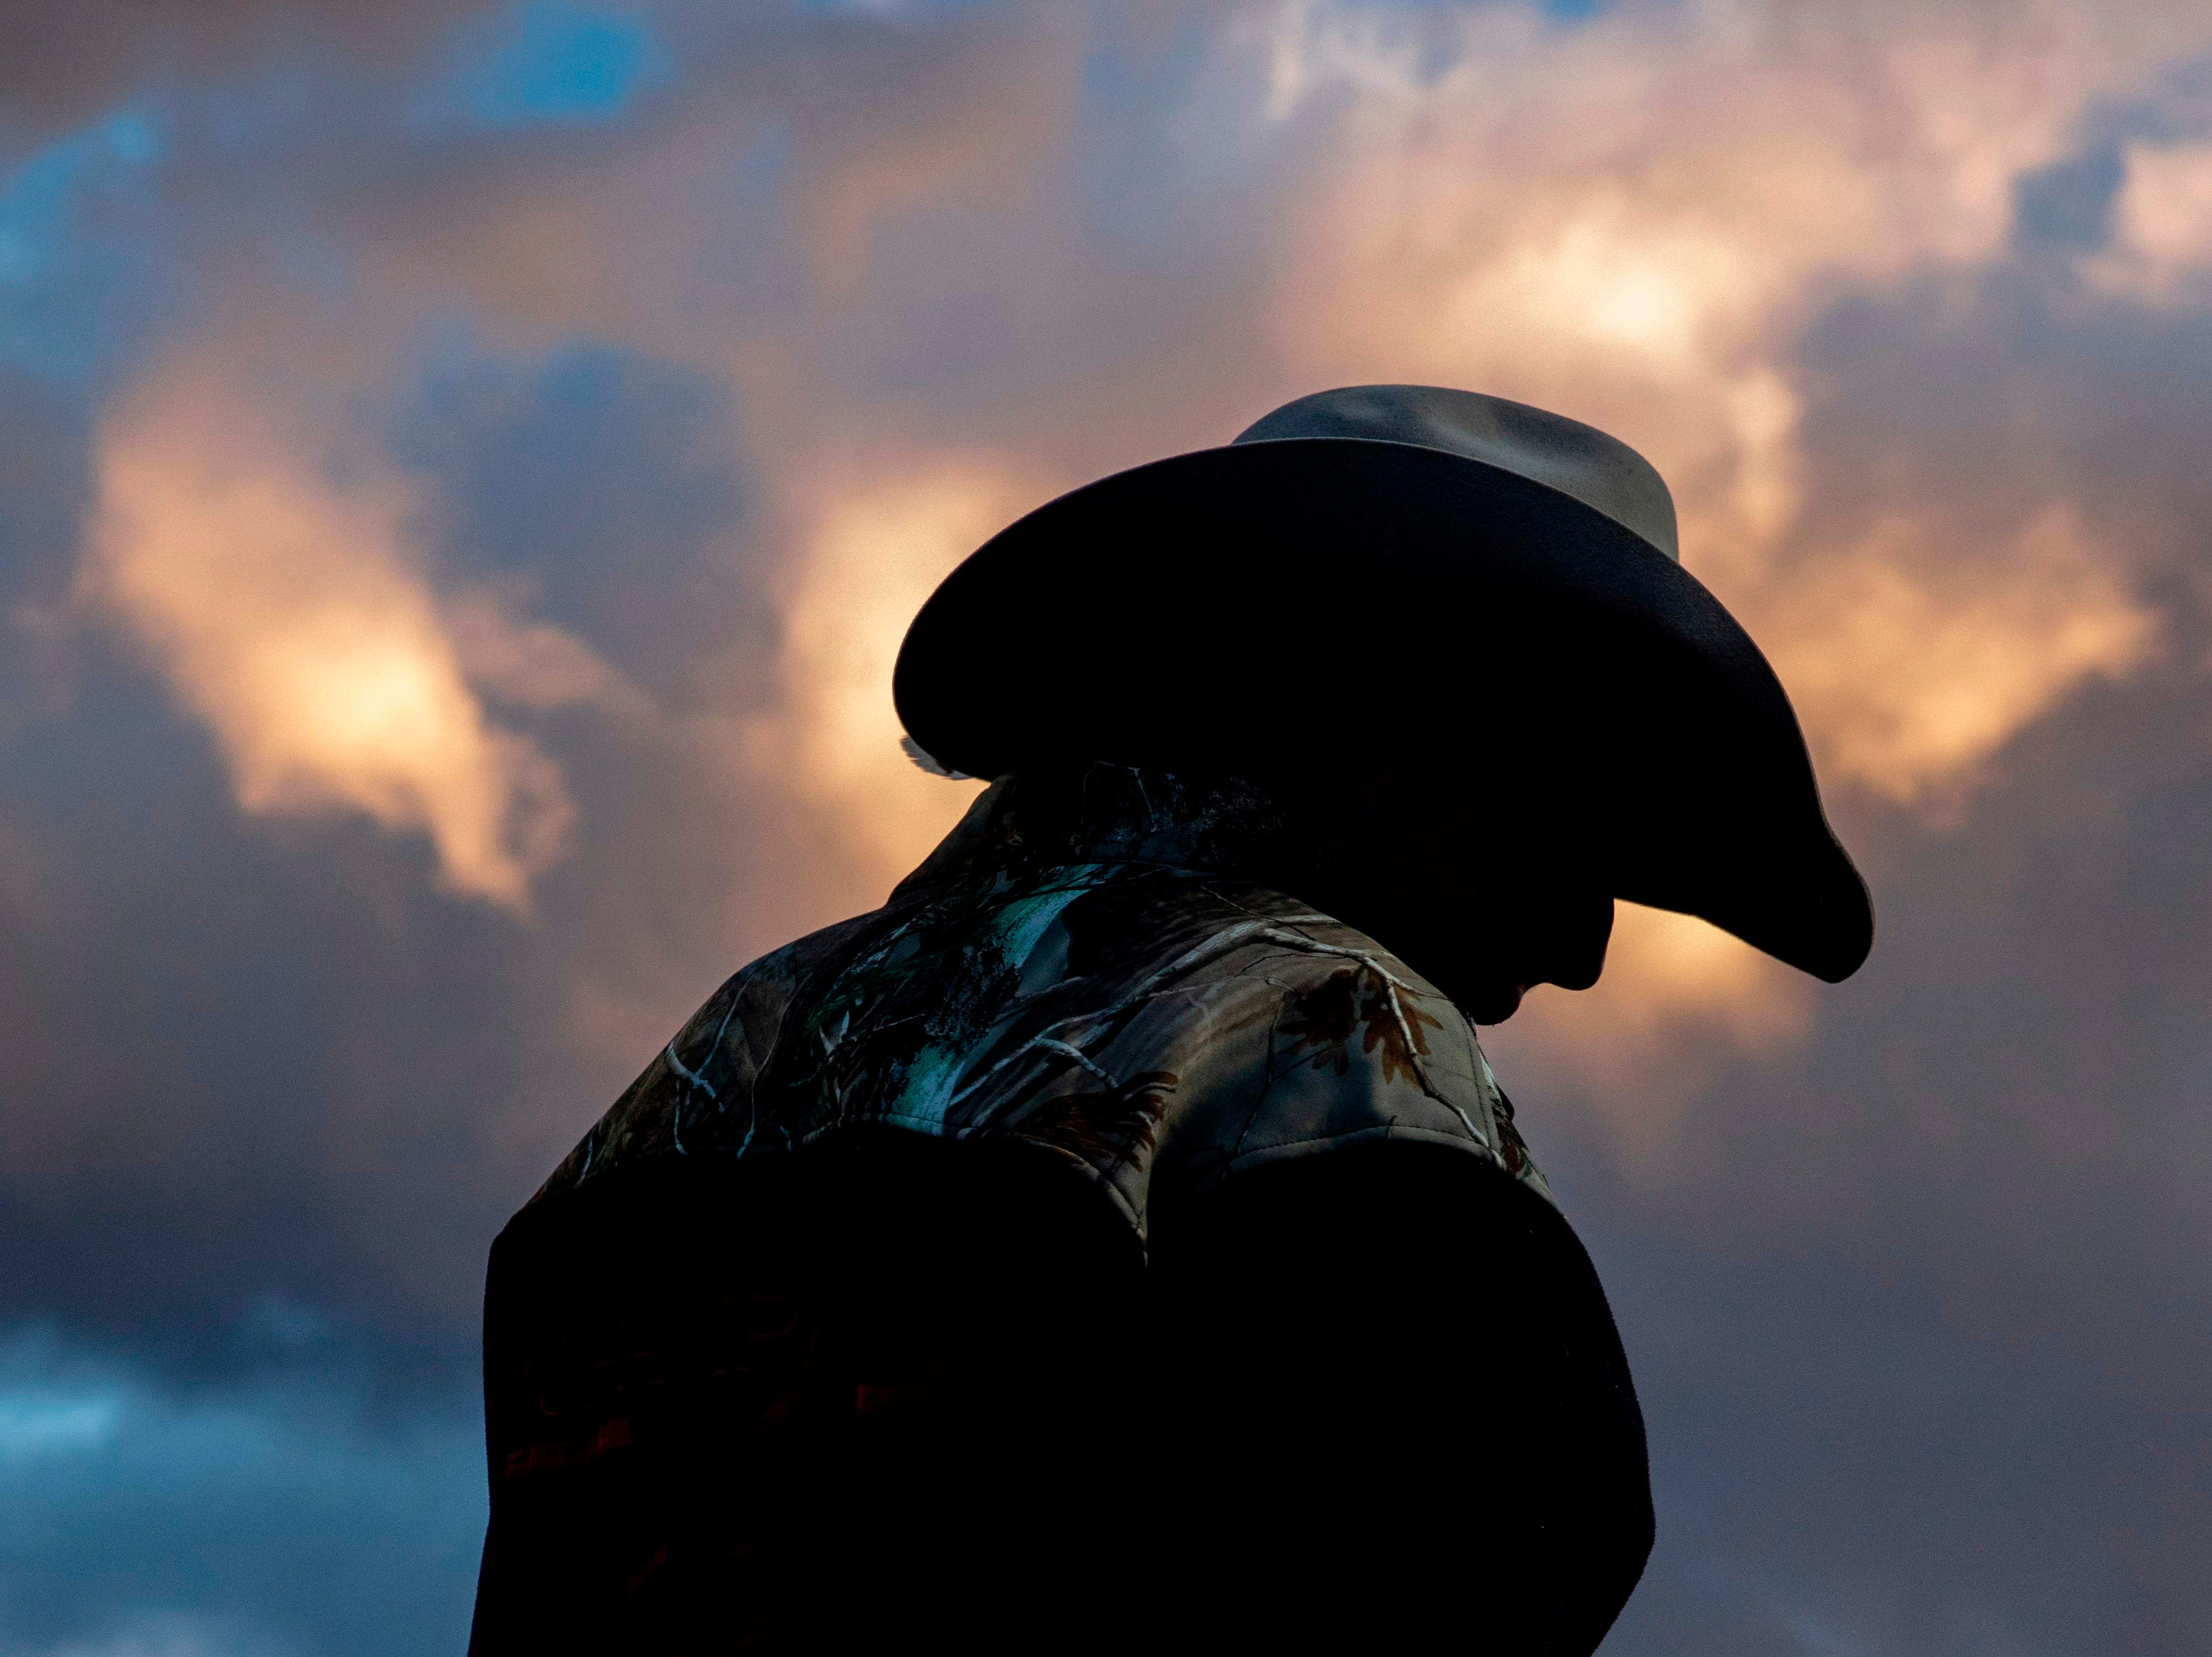 Aug. 22, 2018 : A cowboy watches the rodeo from behind the chute at the Snowmass Rodeo, in Snowmass, Colo.